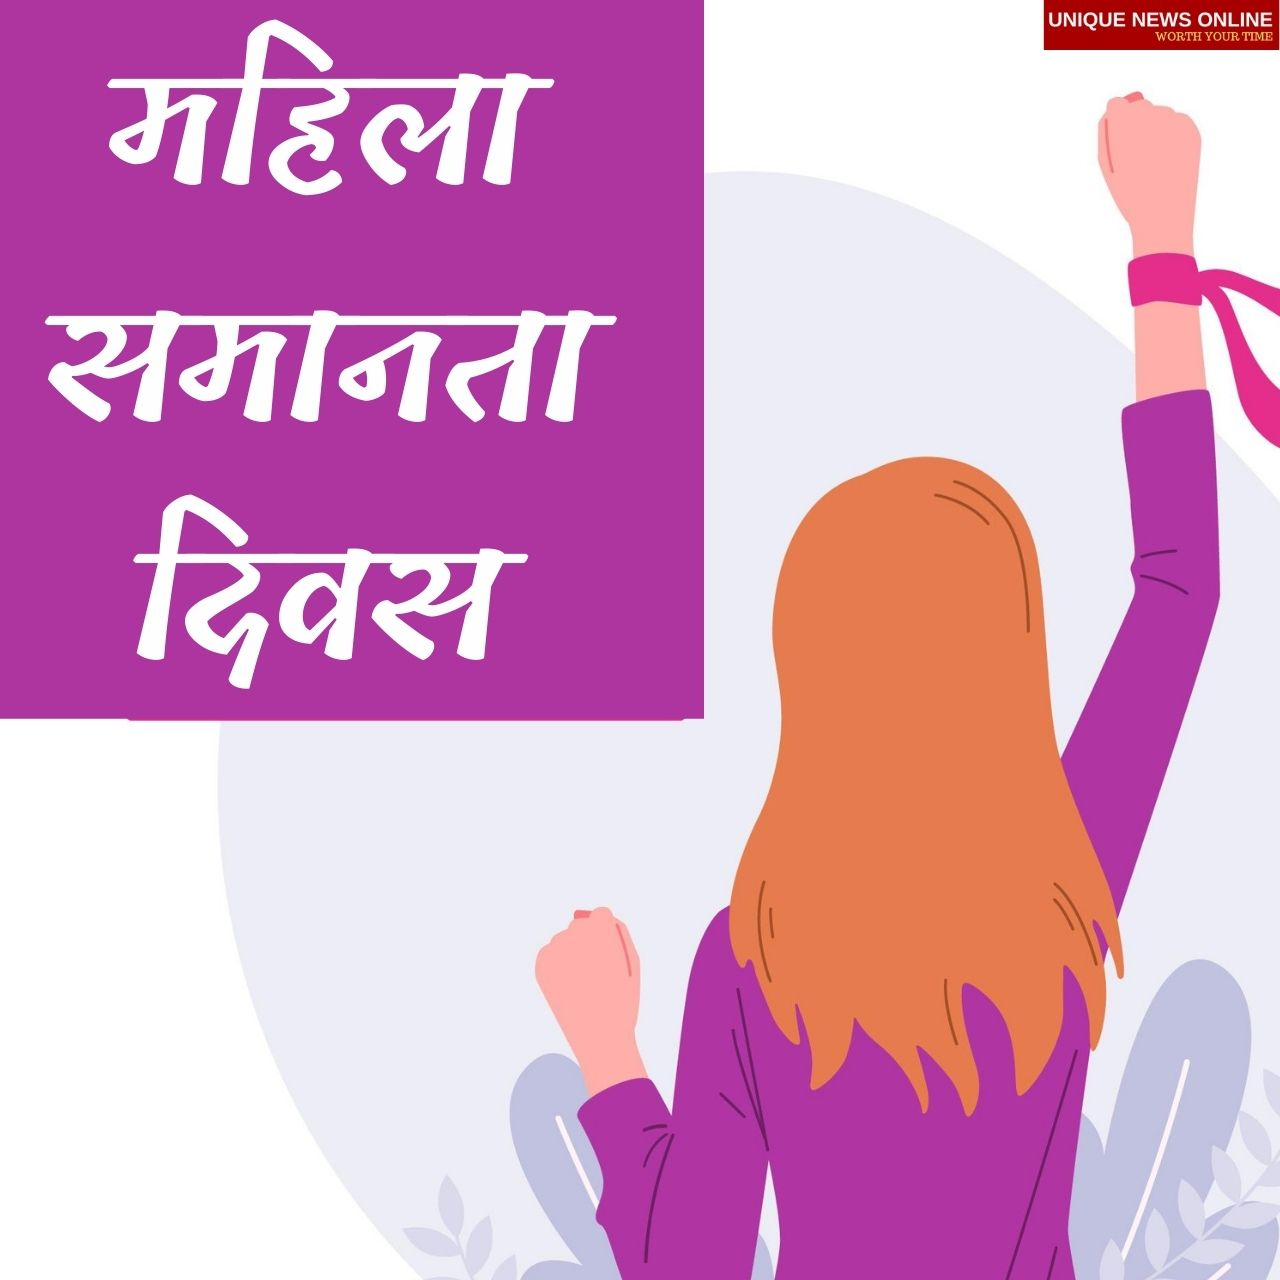 Women's Equality Day 2021 Hindi Quotes, Images, Messages, Wishes, and Greetings to share